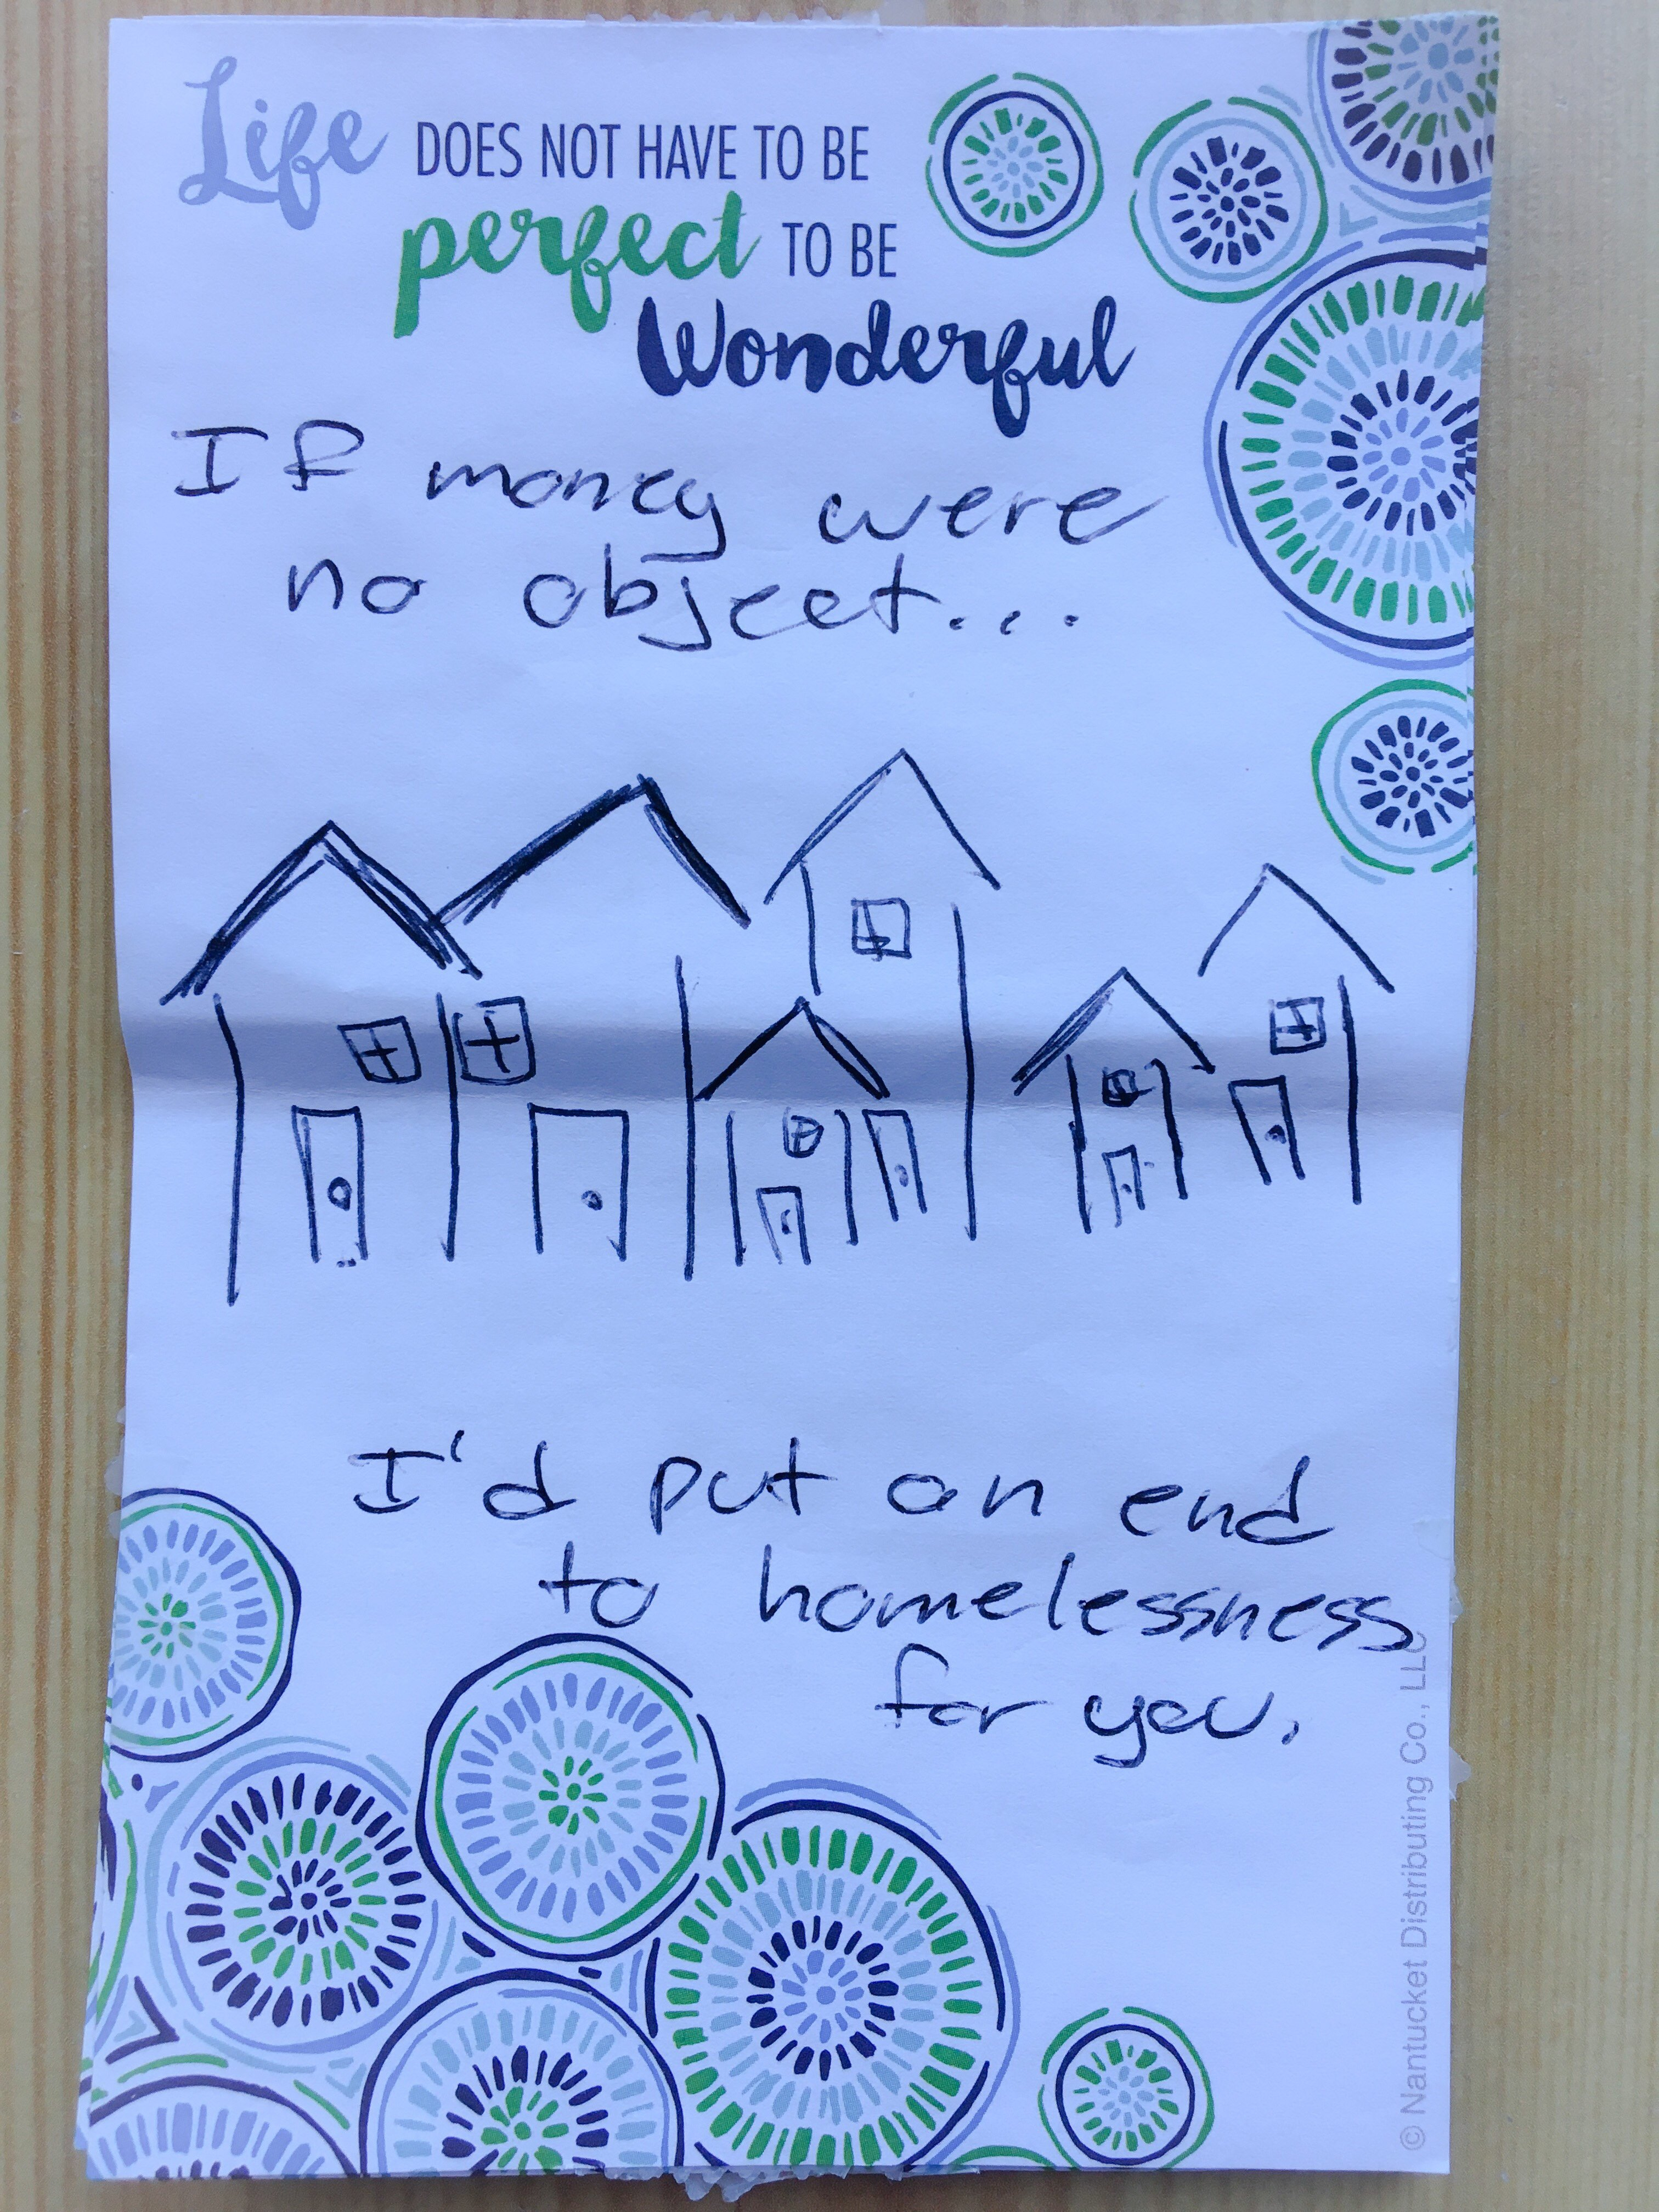 If money were no object, I'd put an end to homelessness for you.